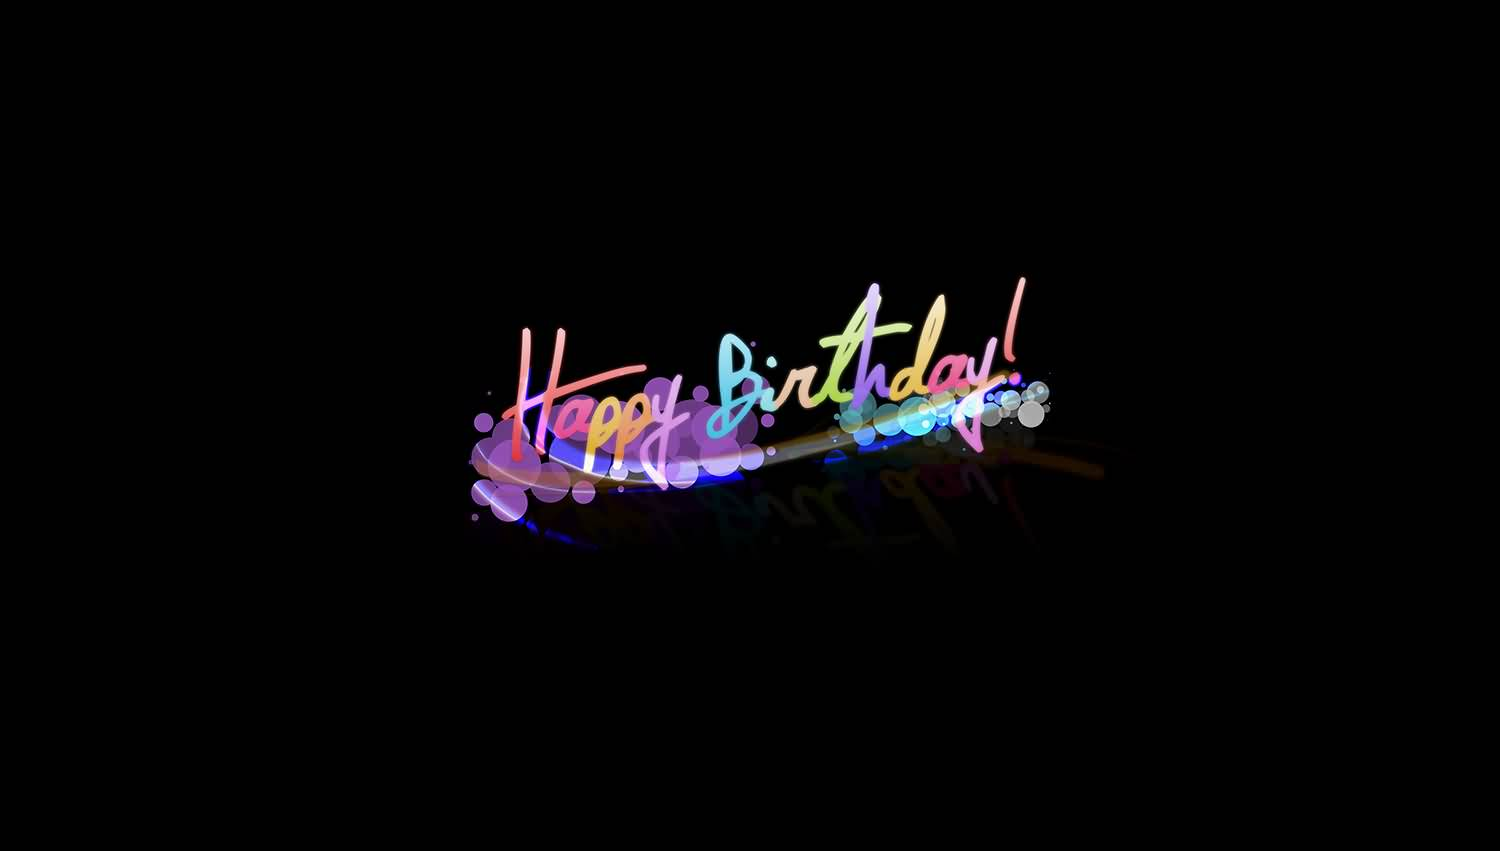 102 @ Birthday Images and Cards